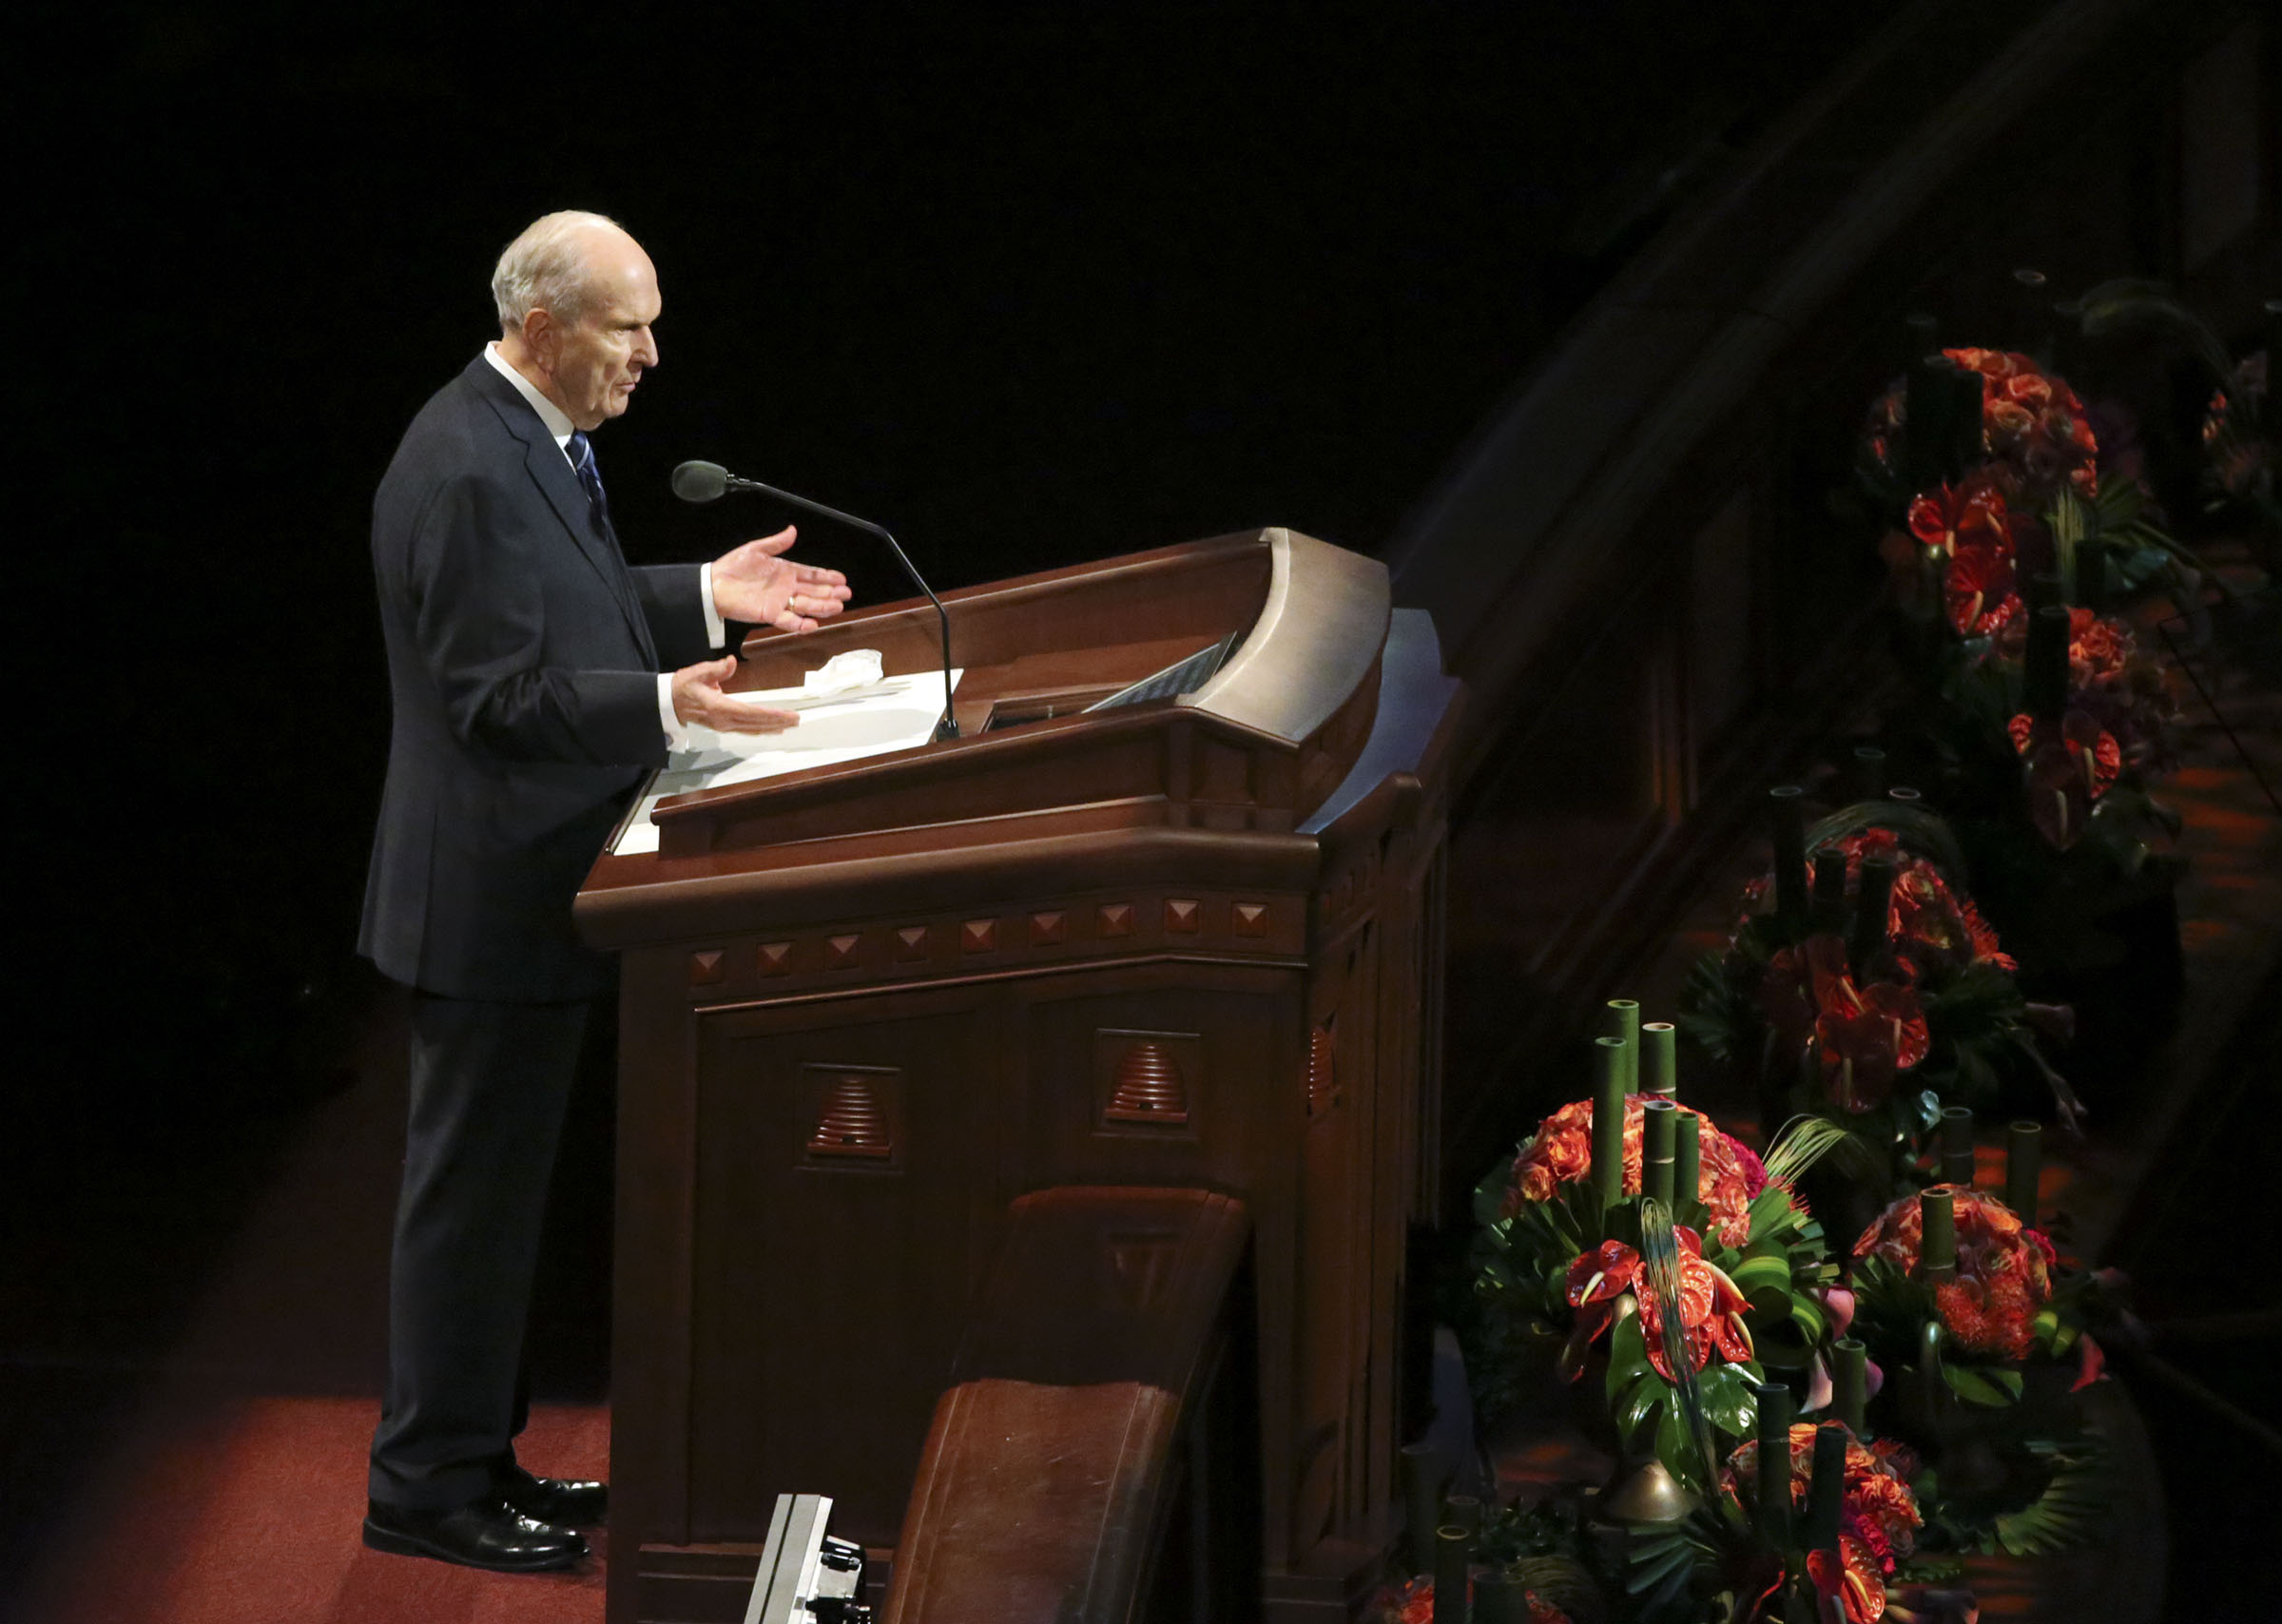 President Russell M. Nelson speaks during the Sunday morning session of the 188th Semiannual General Conference of The Church of Jesus Christ of Latter-day Saints in the Conference Center in downtown Salt Lake City on Sunday, Oct. 7, 2018.